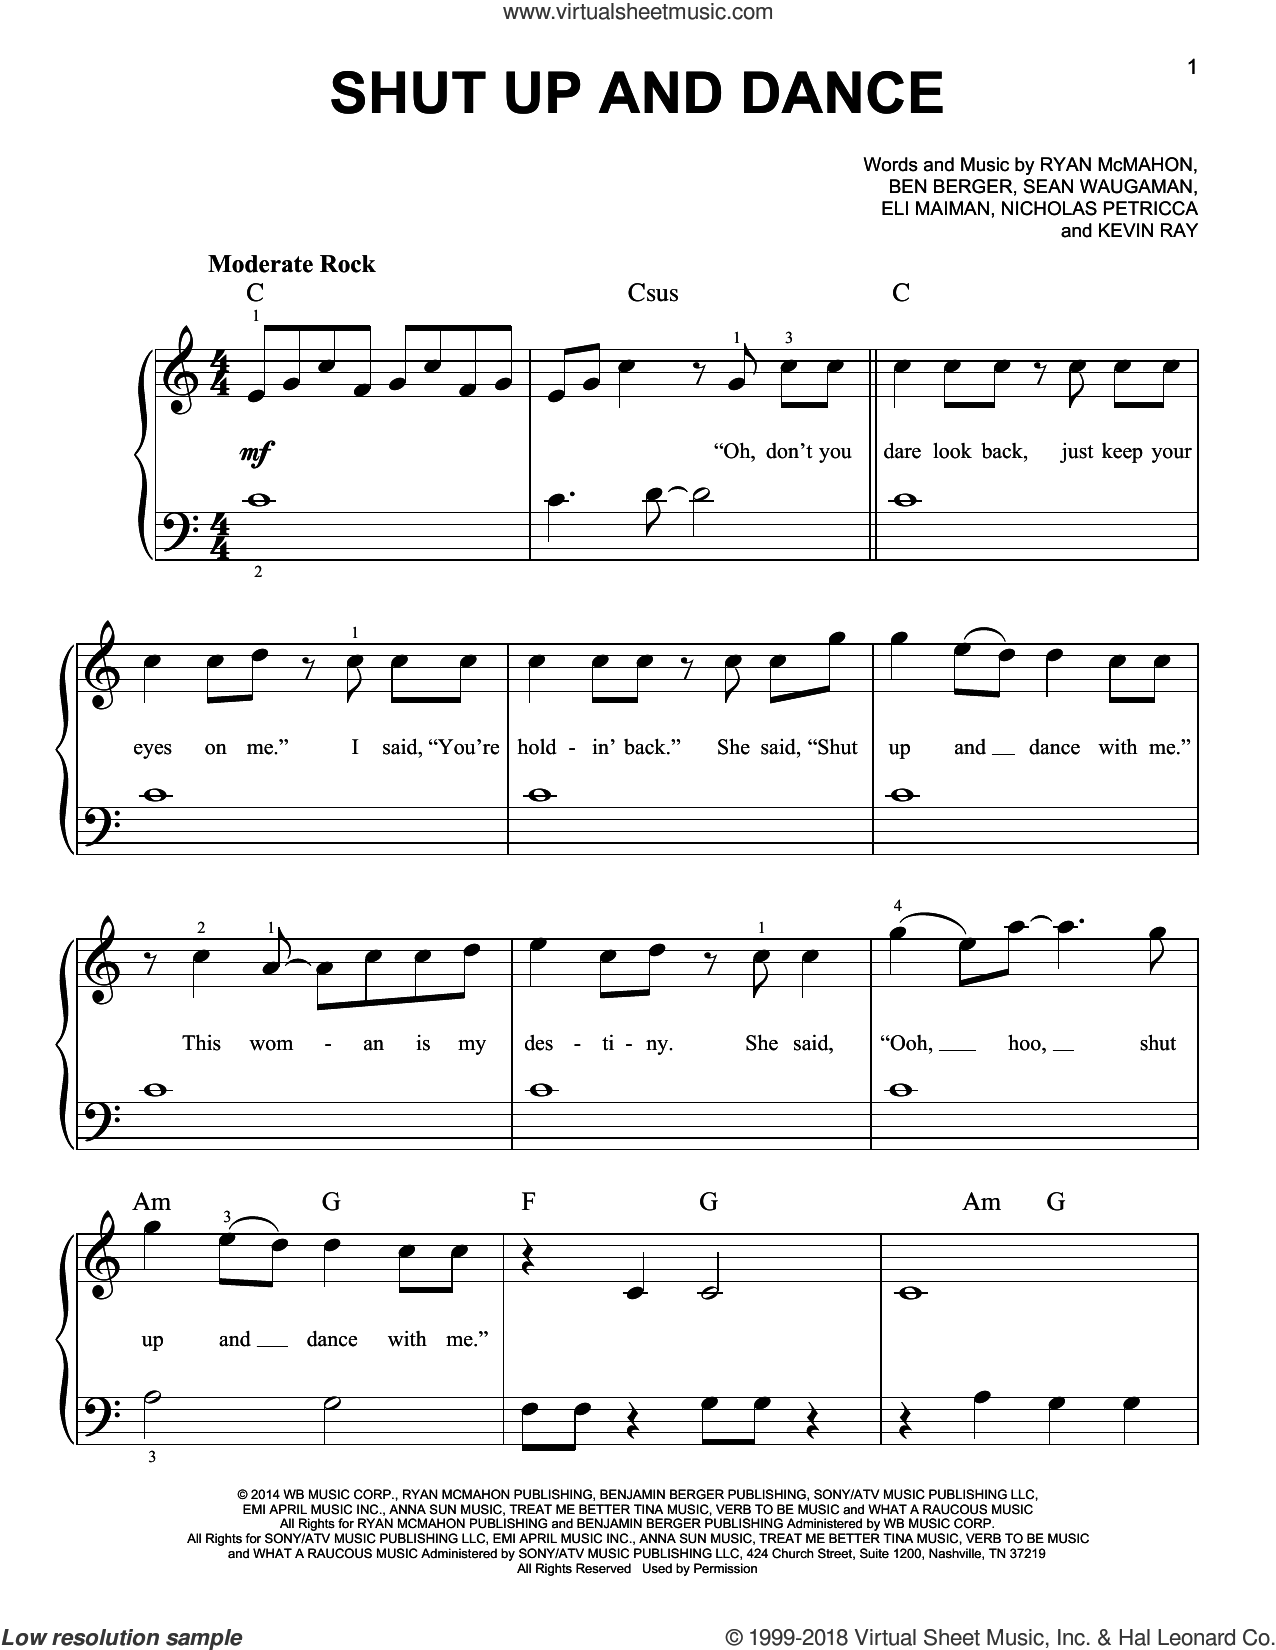 Shut Up And Dance sheet music for piano solo by Sean Waugaman, Walk The Moon, Kevin Ray, Nicholas Petricca and Ryan McMahon. Score Image Preview.